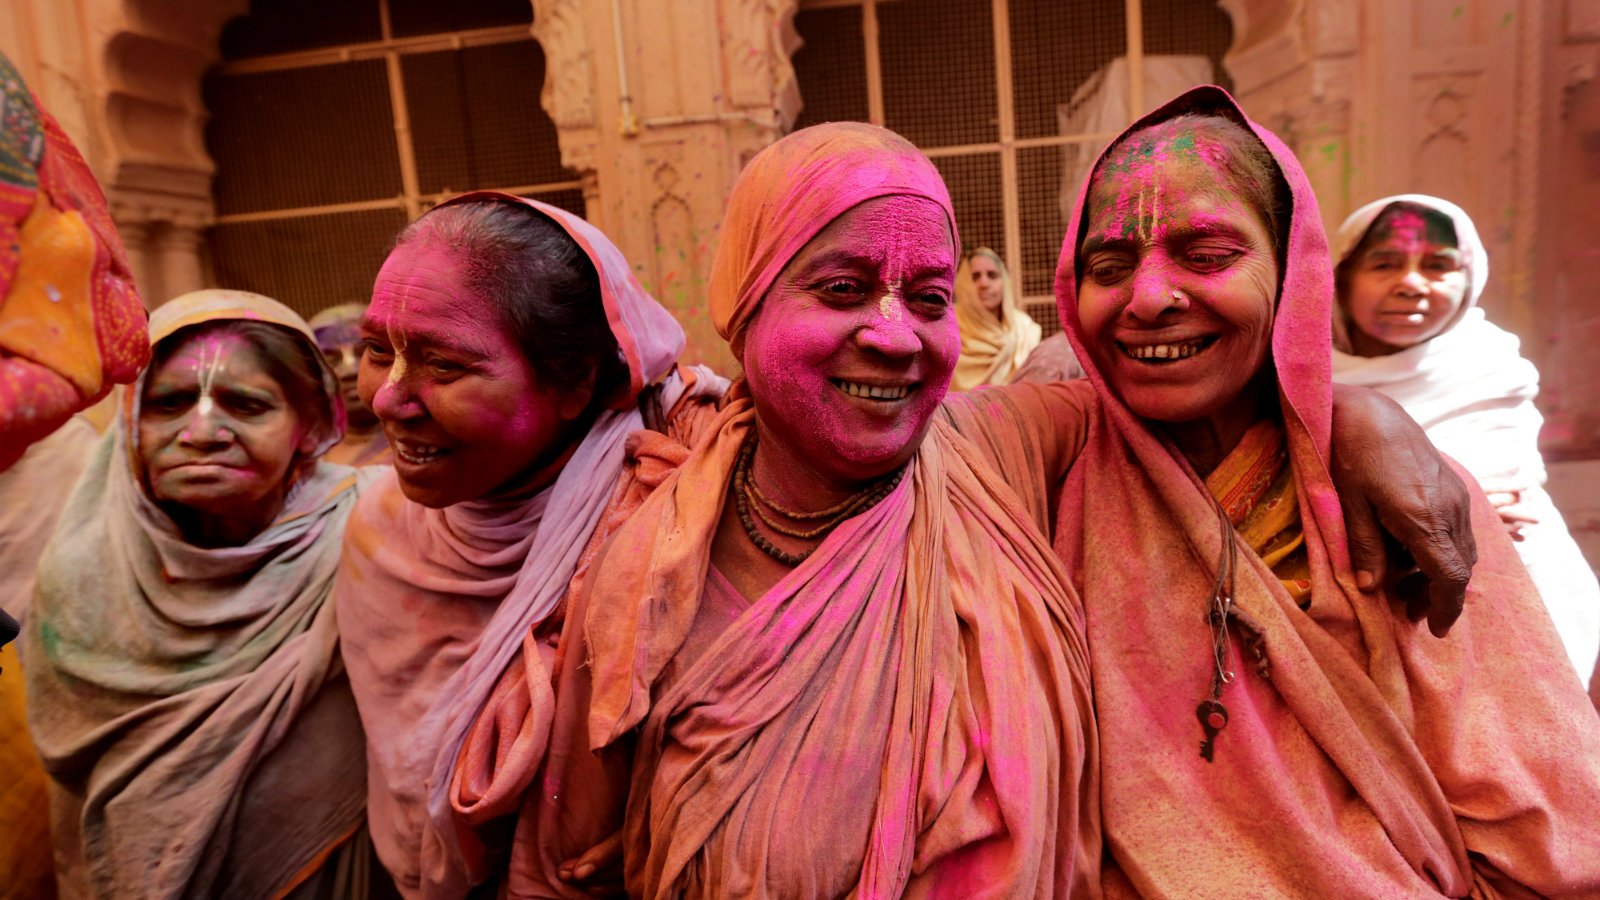 Indian widows participate in a celebration of the Holi festival in Vrindavan, Uttar Pradesh, India, 21 March 2016. Thousands of widows from Vrindavan and Varanasi marked the Hindu spring festival of colors at a temple. The event was organized by Indian NGO Sulabh International that is trying to improve the condition of widows who are living in government shelter homes. This was the first time widows marked the Holi festival inside any temple as still in many parts of India widows are not allowed to celebrate Holi and participate in other festivals.